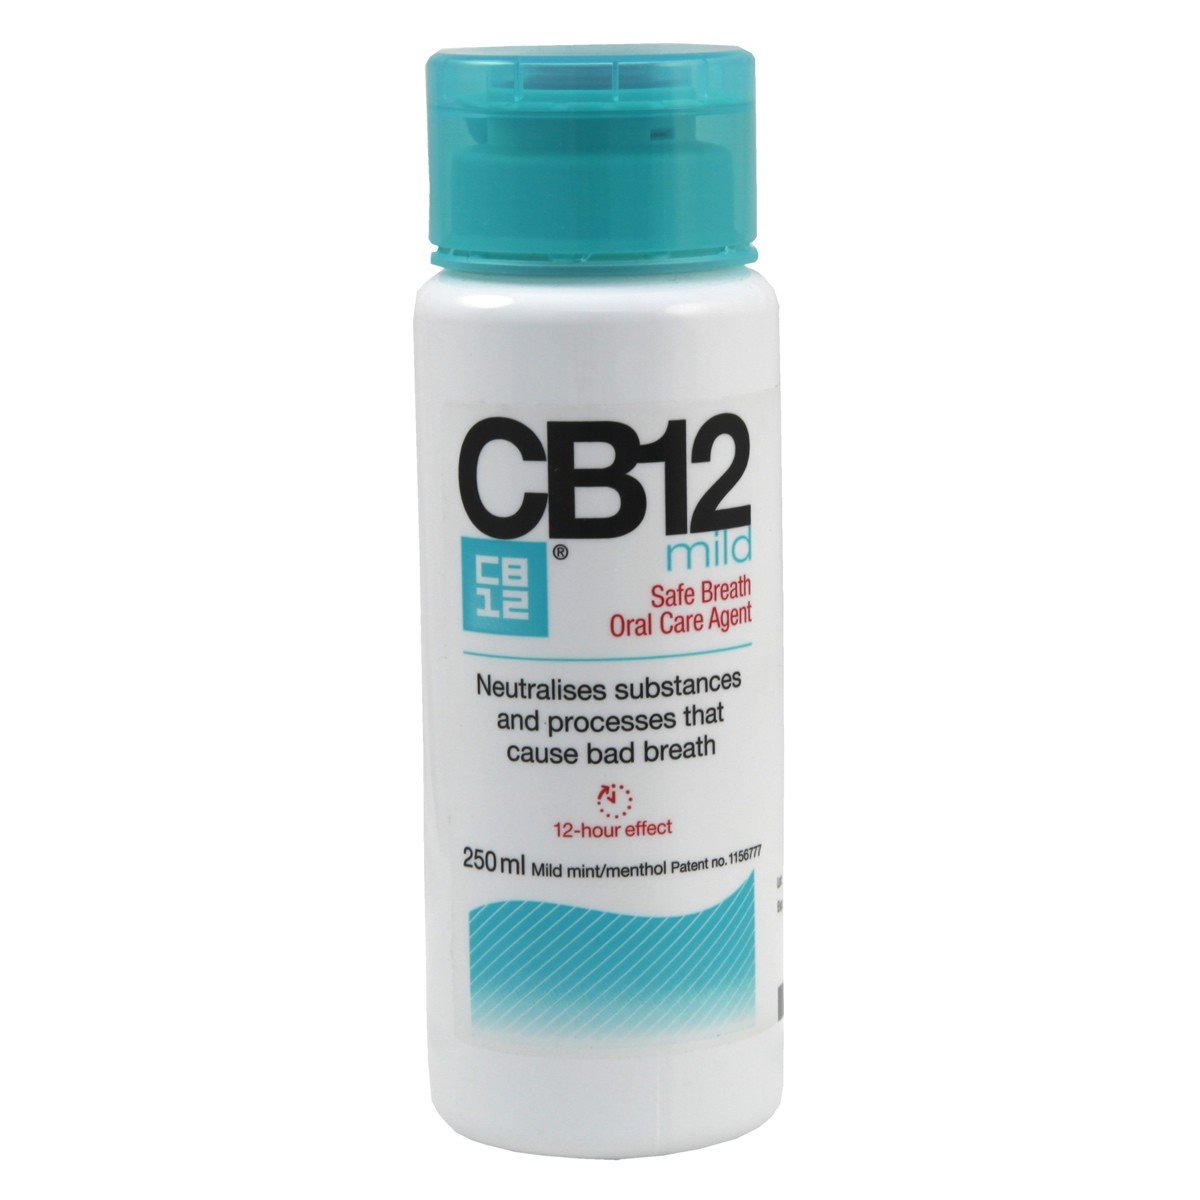 CB12 Mild Safe Breath Oral Care Agent Mouthwash